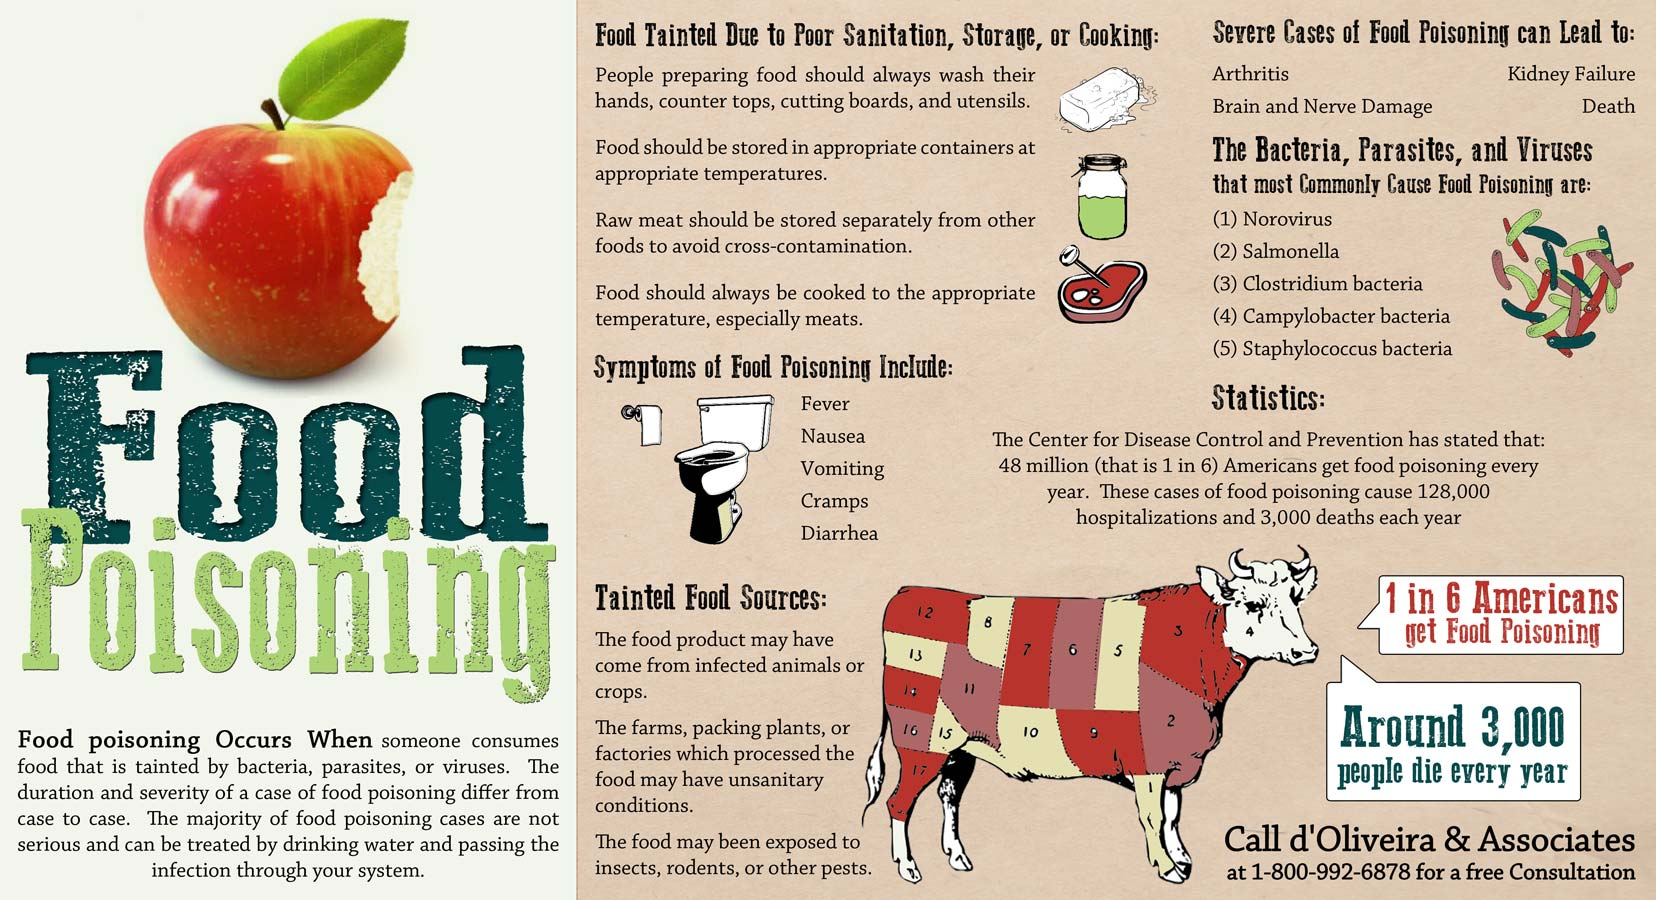 food poisoning [infographic] #food #poisoning – infographic list